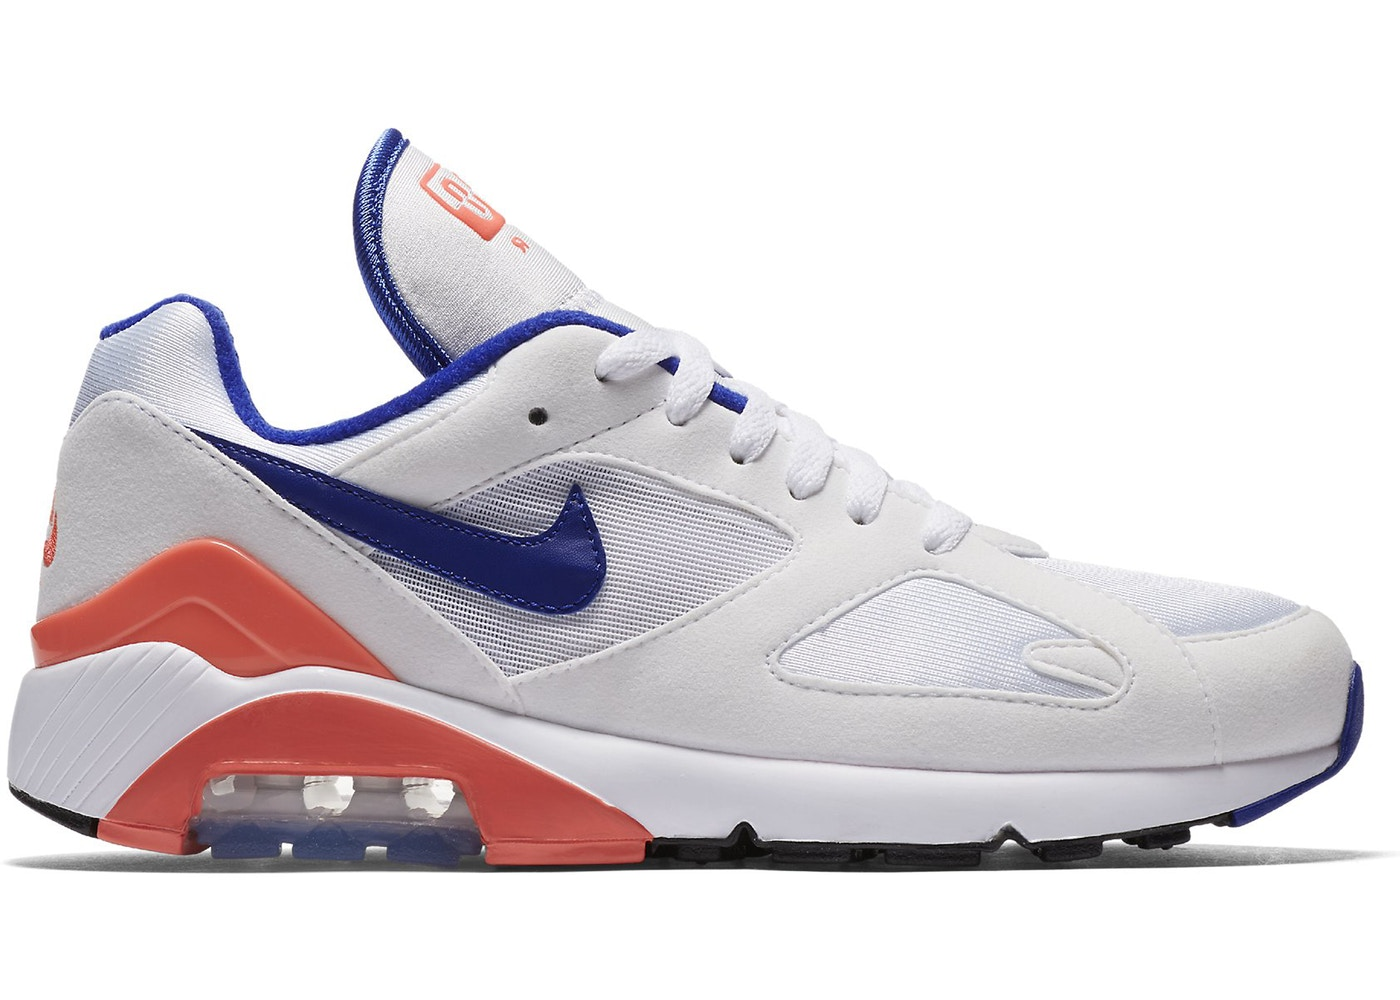 premium selection 92876 5442a Air Max 180 Ultramarine 2018 (W)